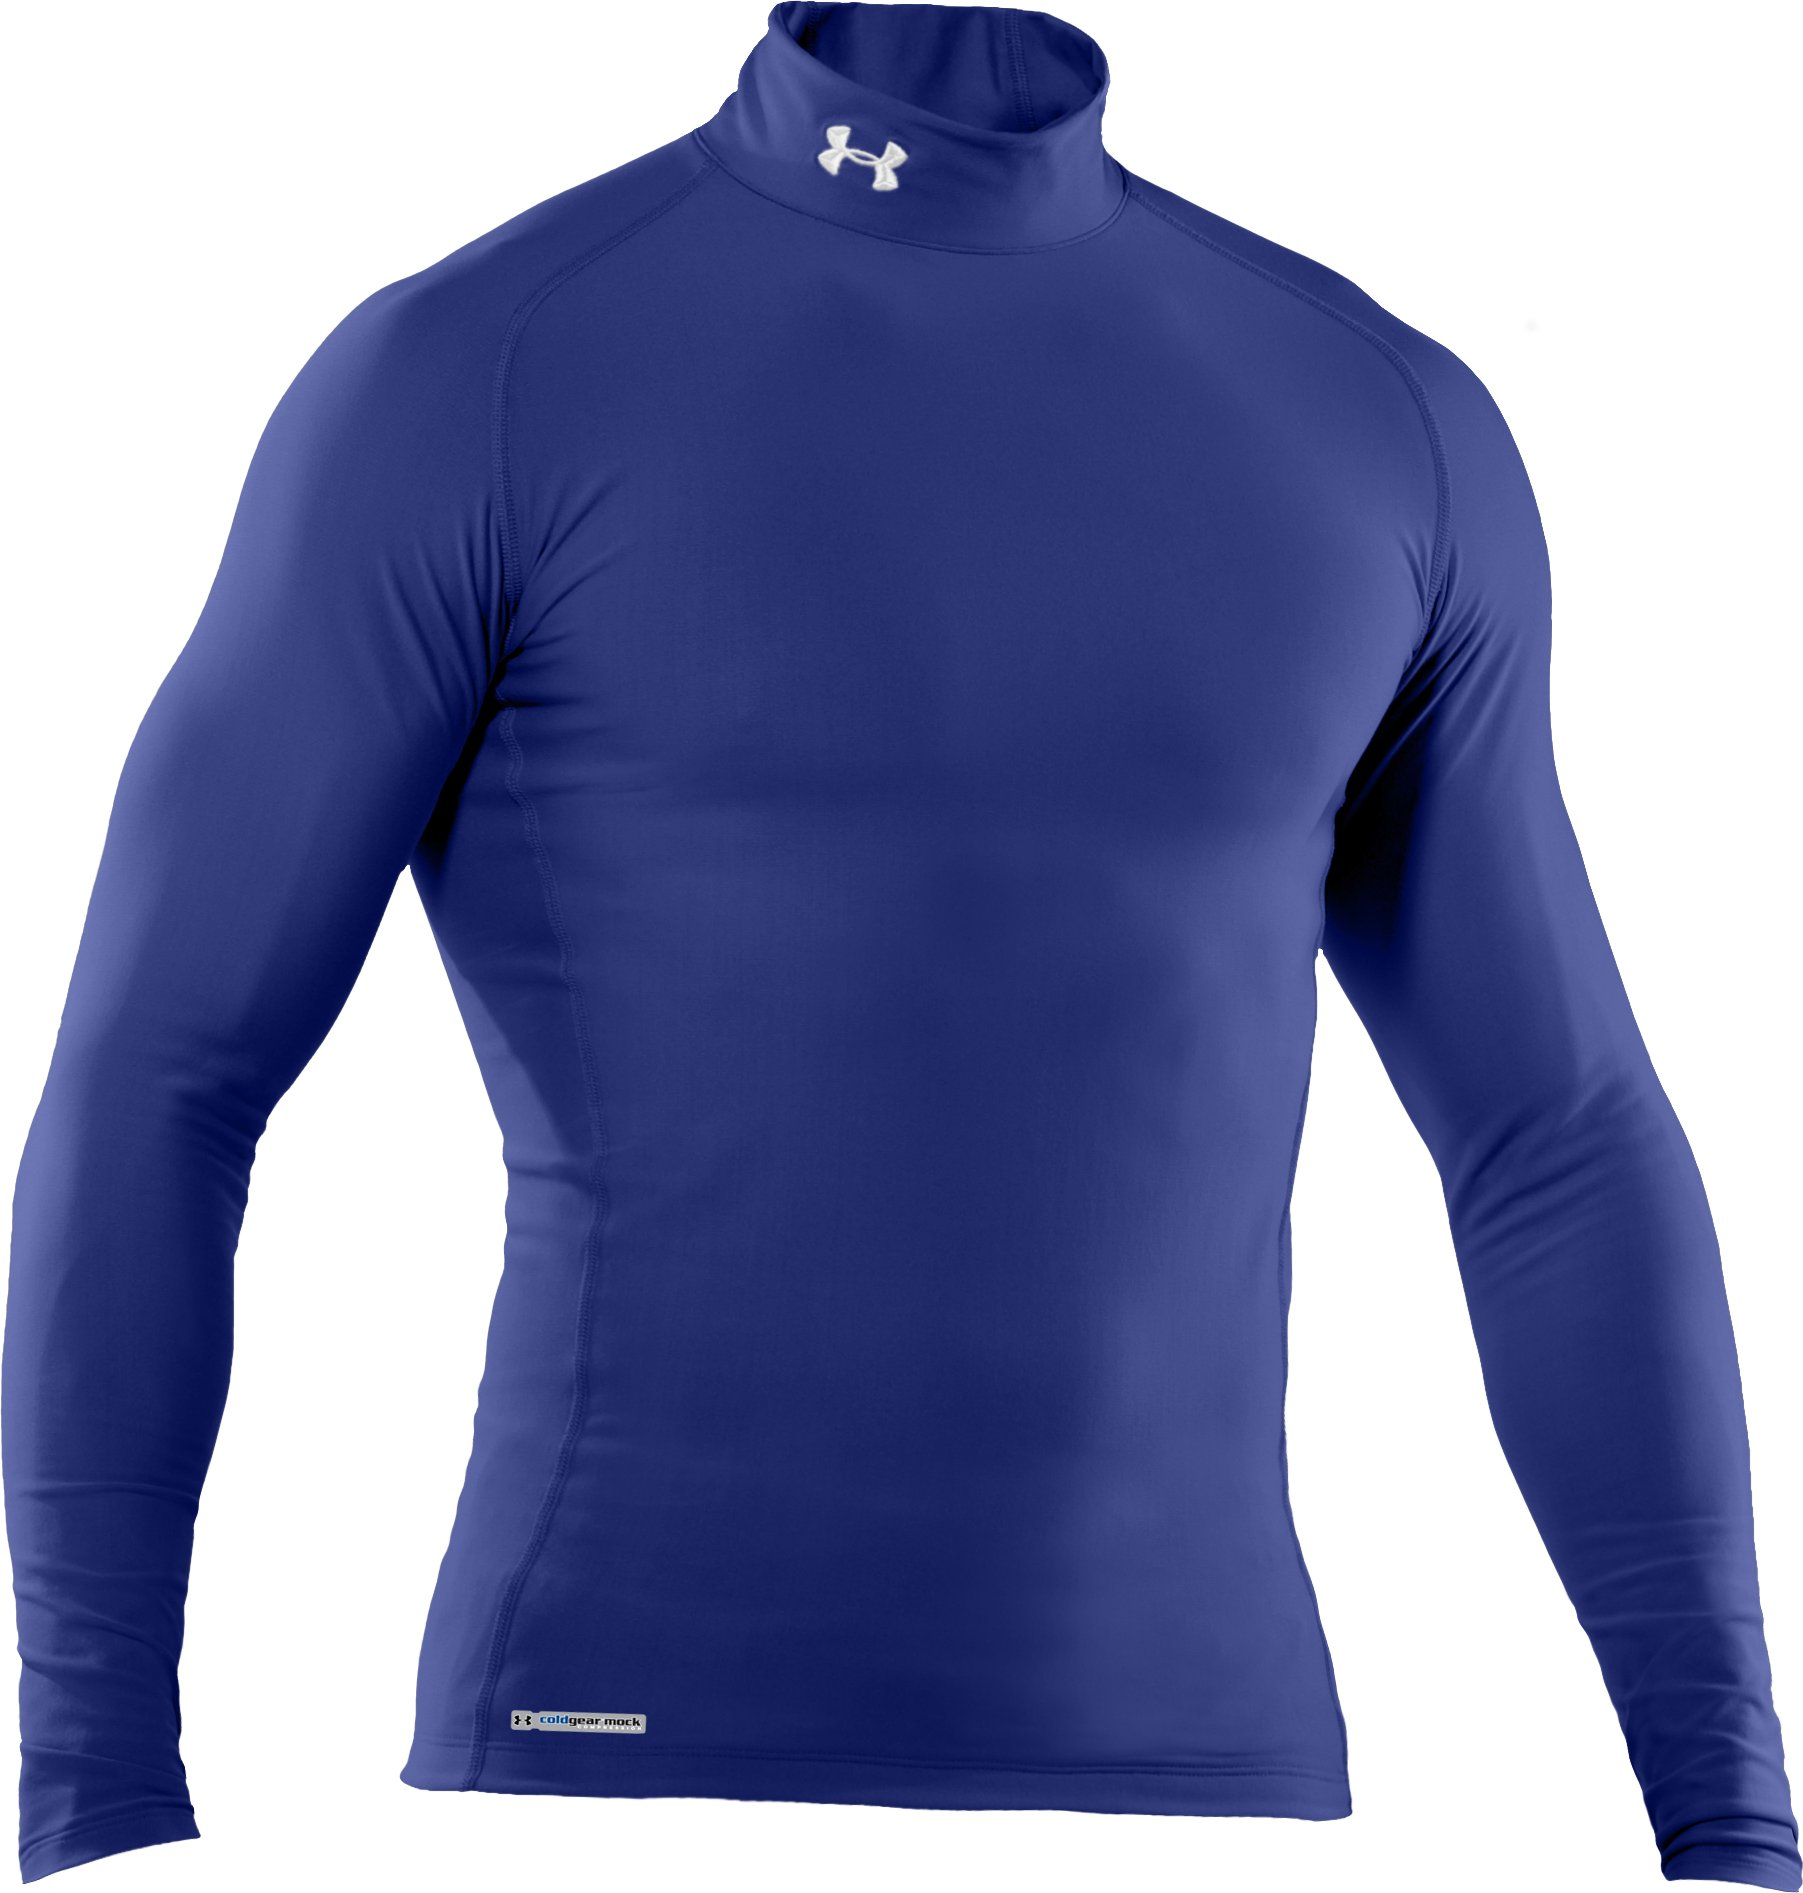 Men's ColdGear® Evo Long Sleeve Compression Mock, Royal